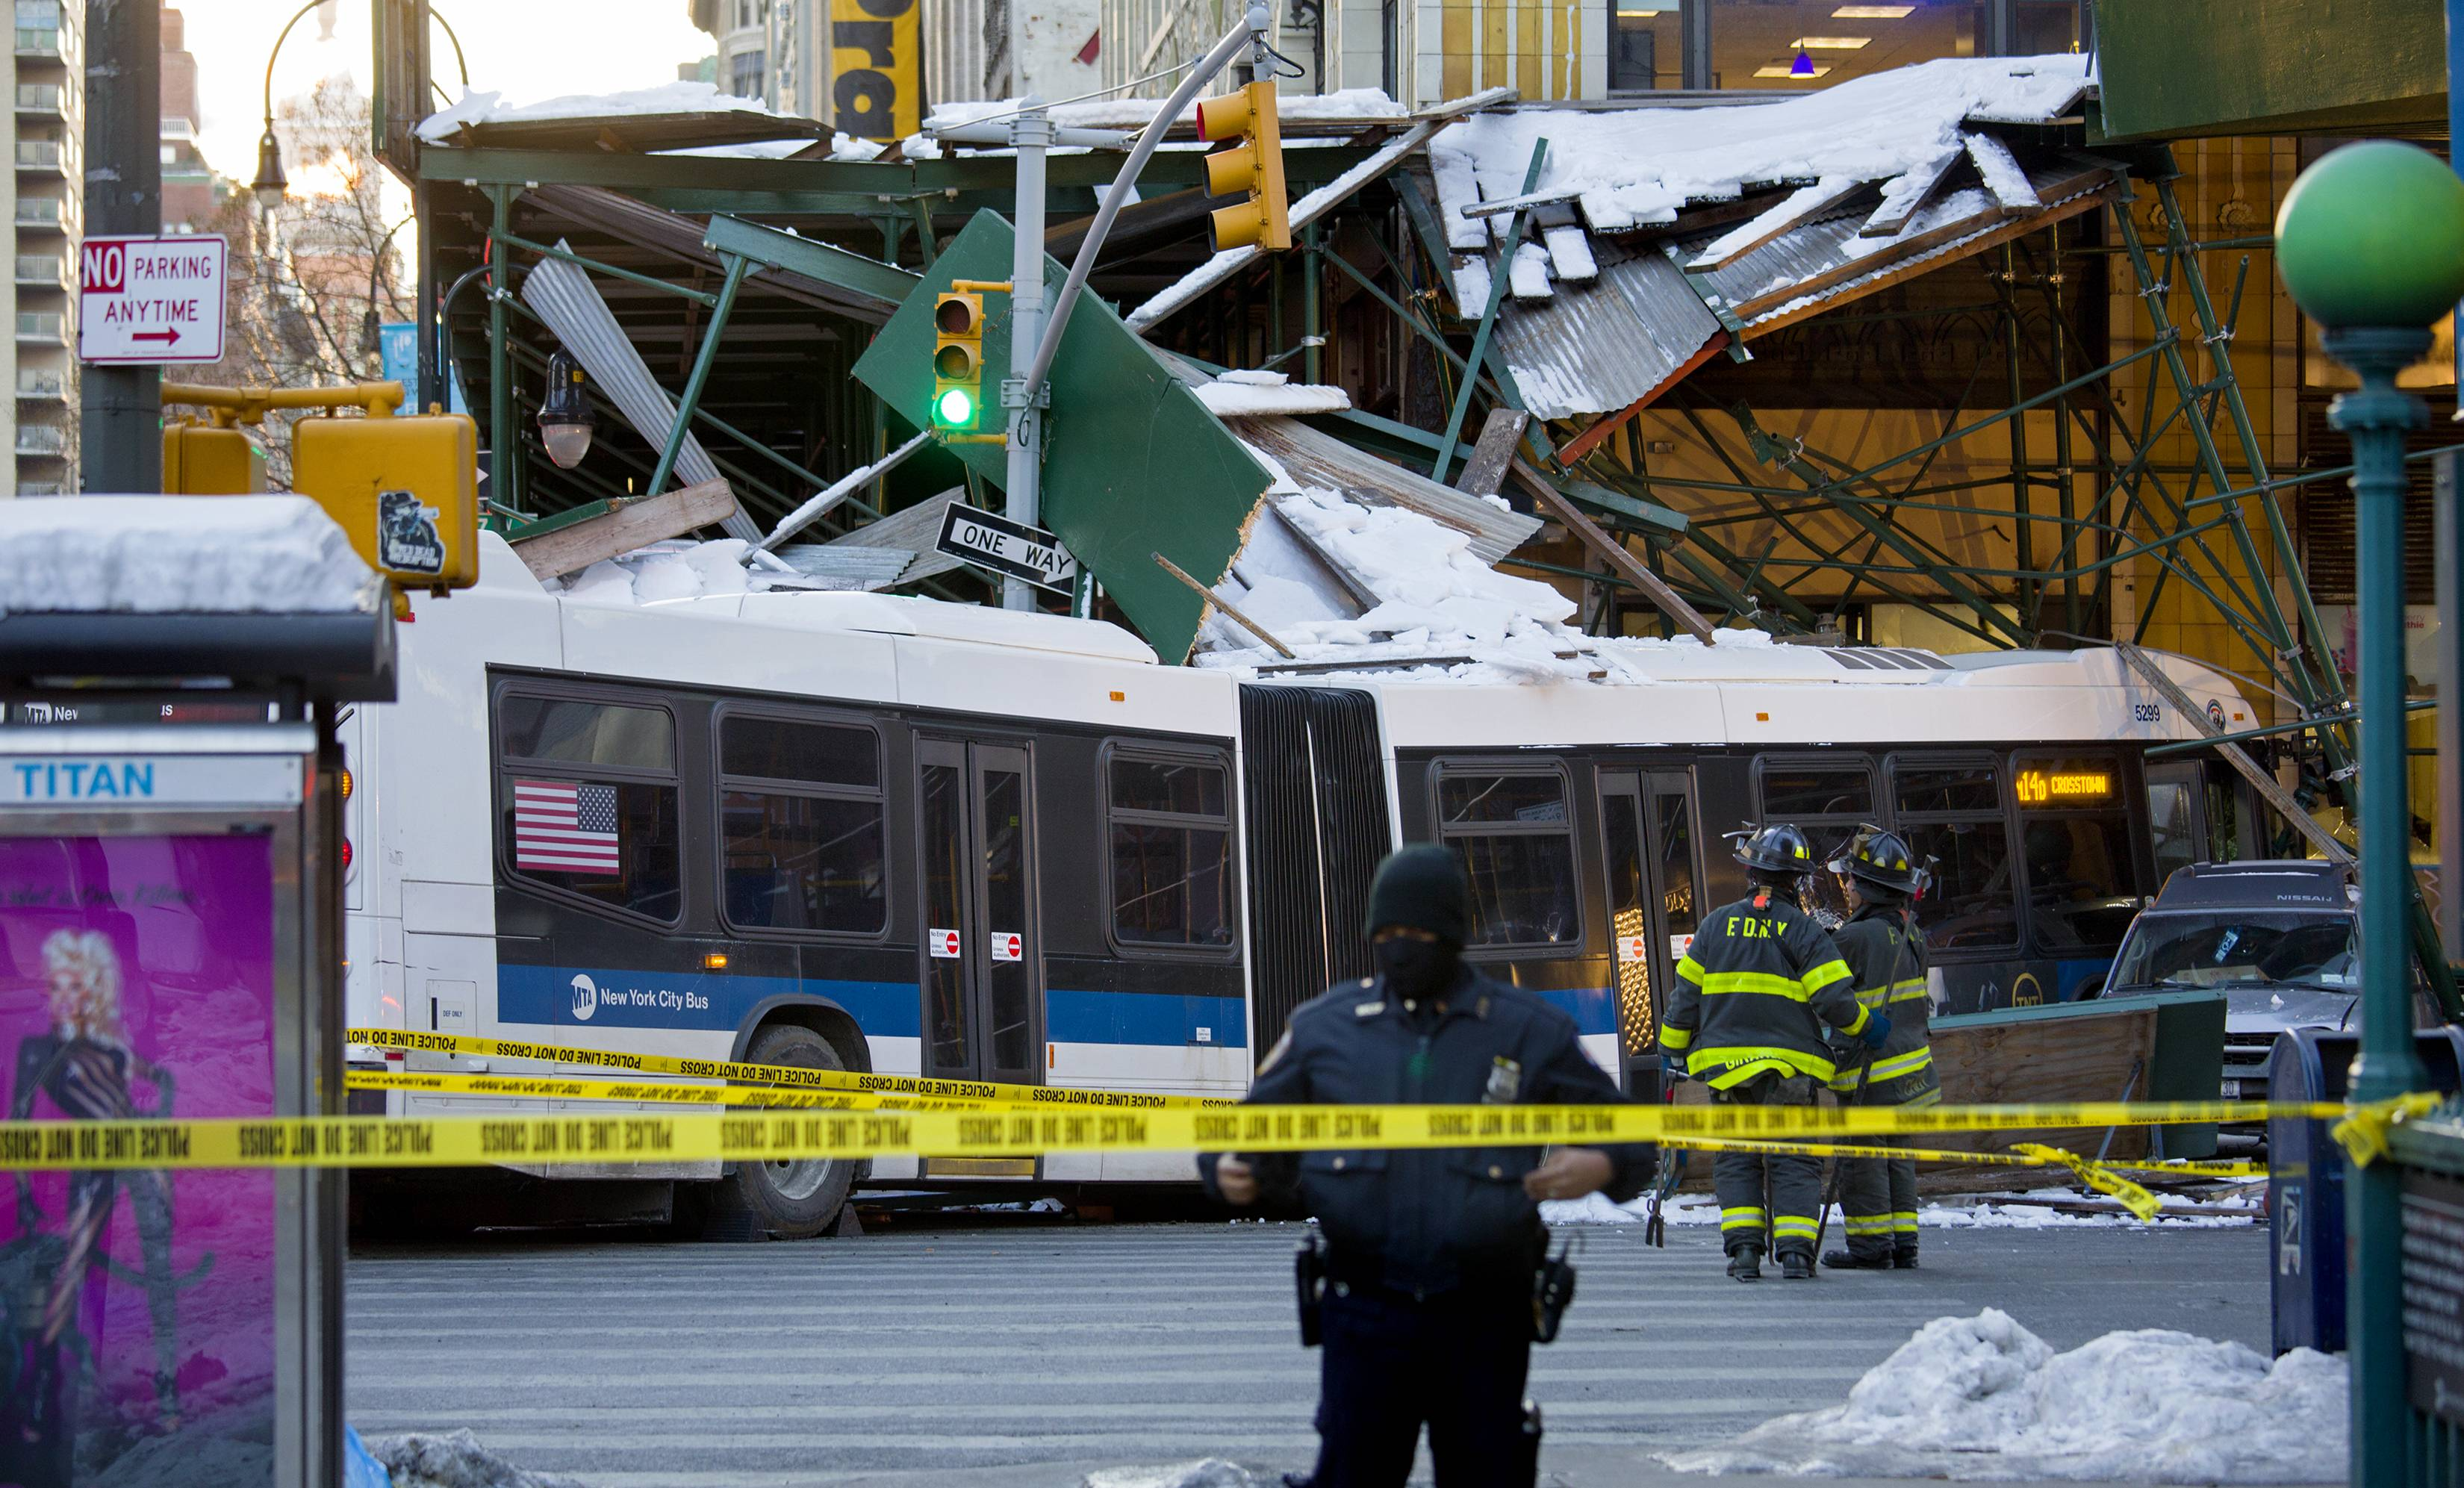 A Metropolitan Transportation Authority bus rests against scaffolding at 14th Street and 7th Avenue in New York, Wednesday, Feb. 12, 2014, after an early morning collision between the bus and a truck. One person was killed and at least four were injured in the crash, that also involved several parked vehicles.